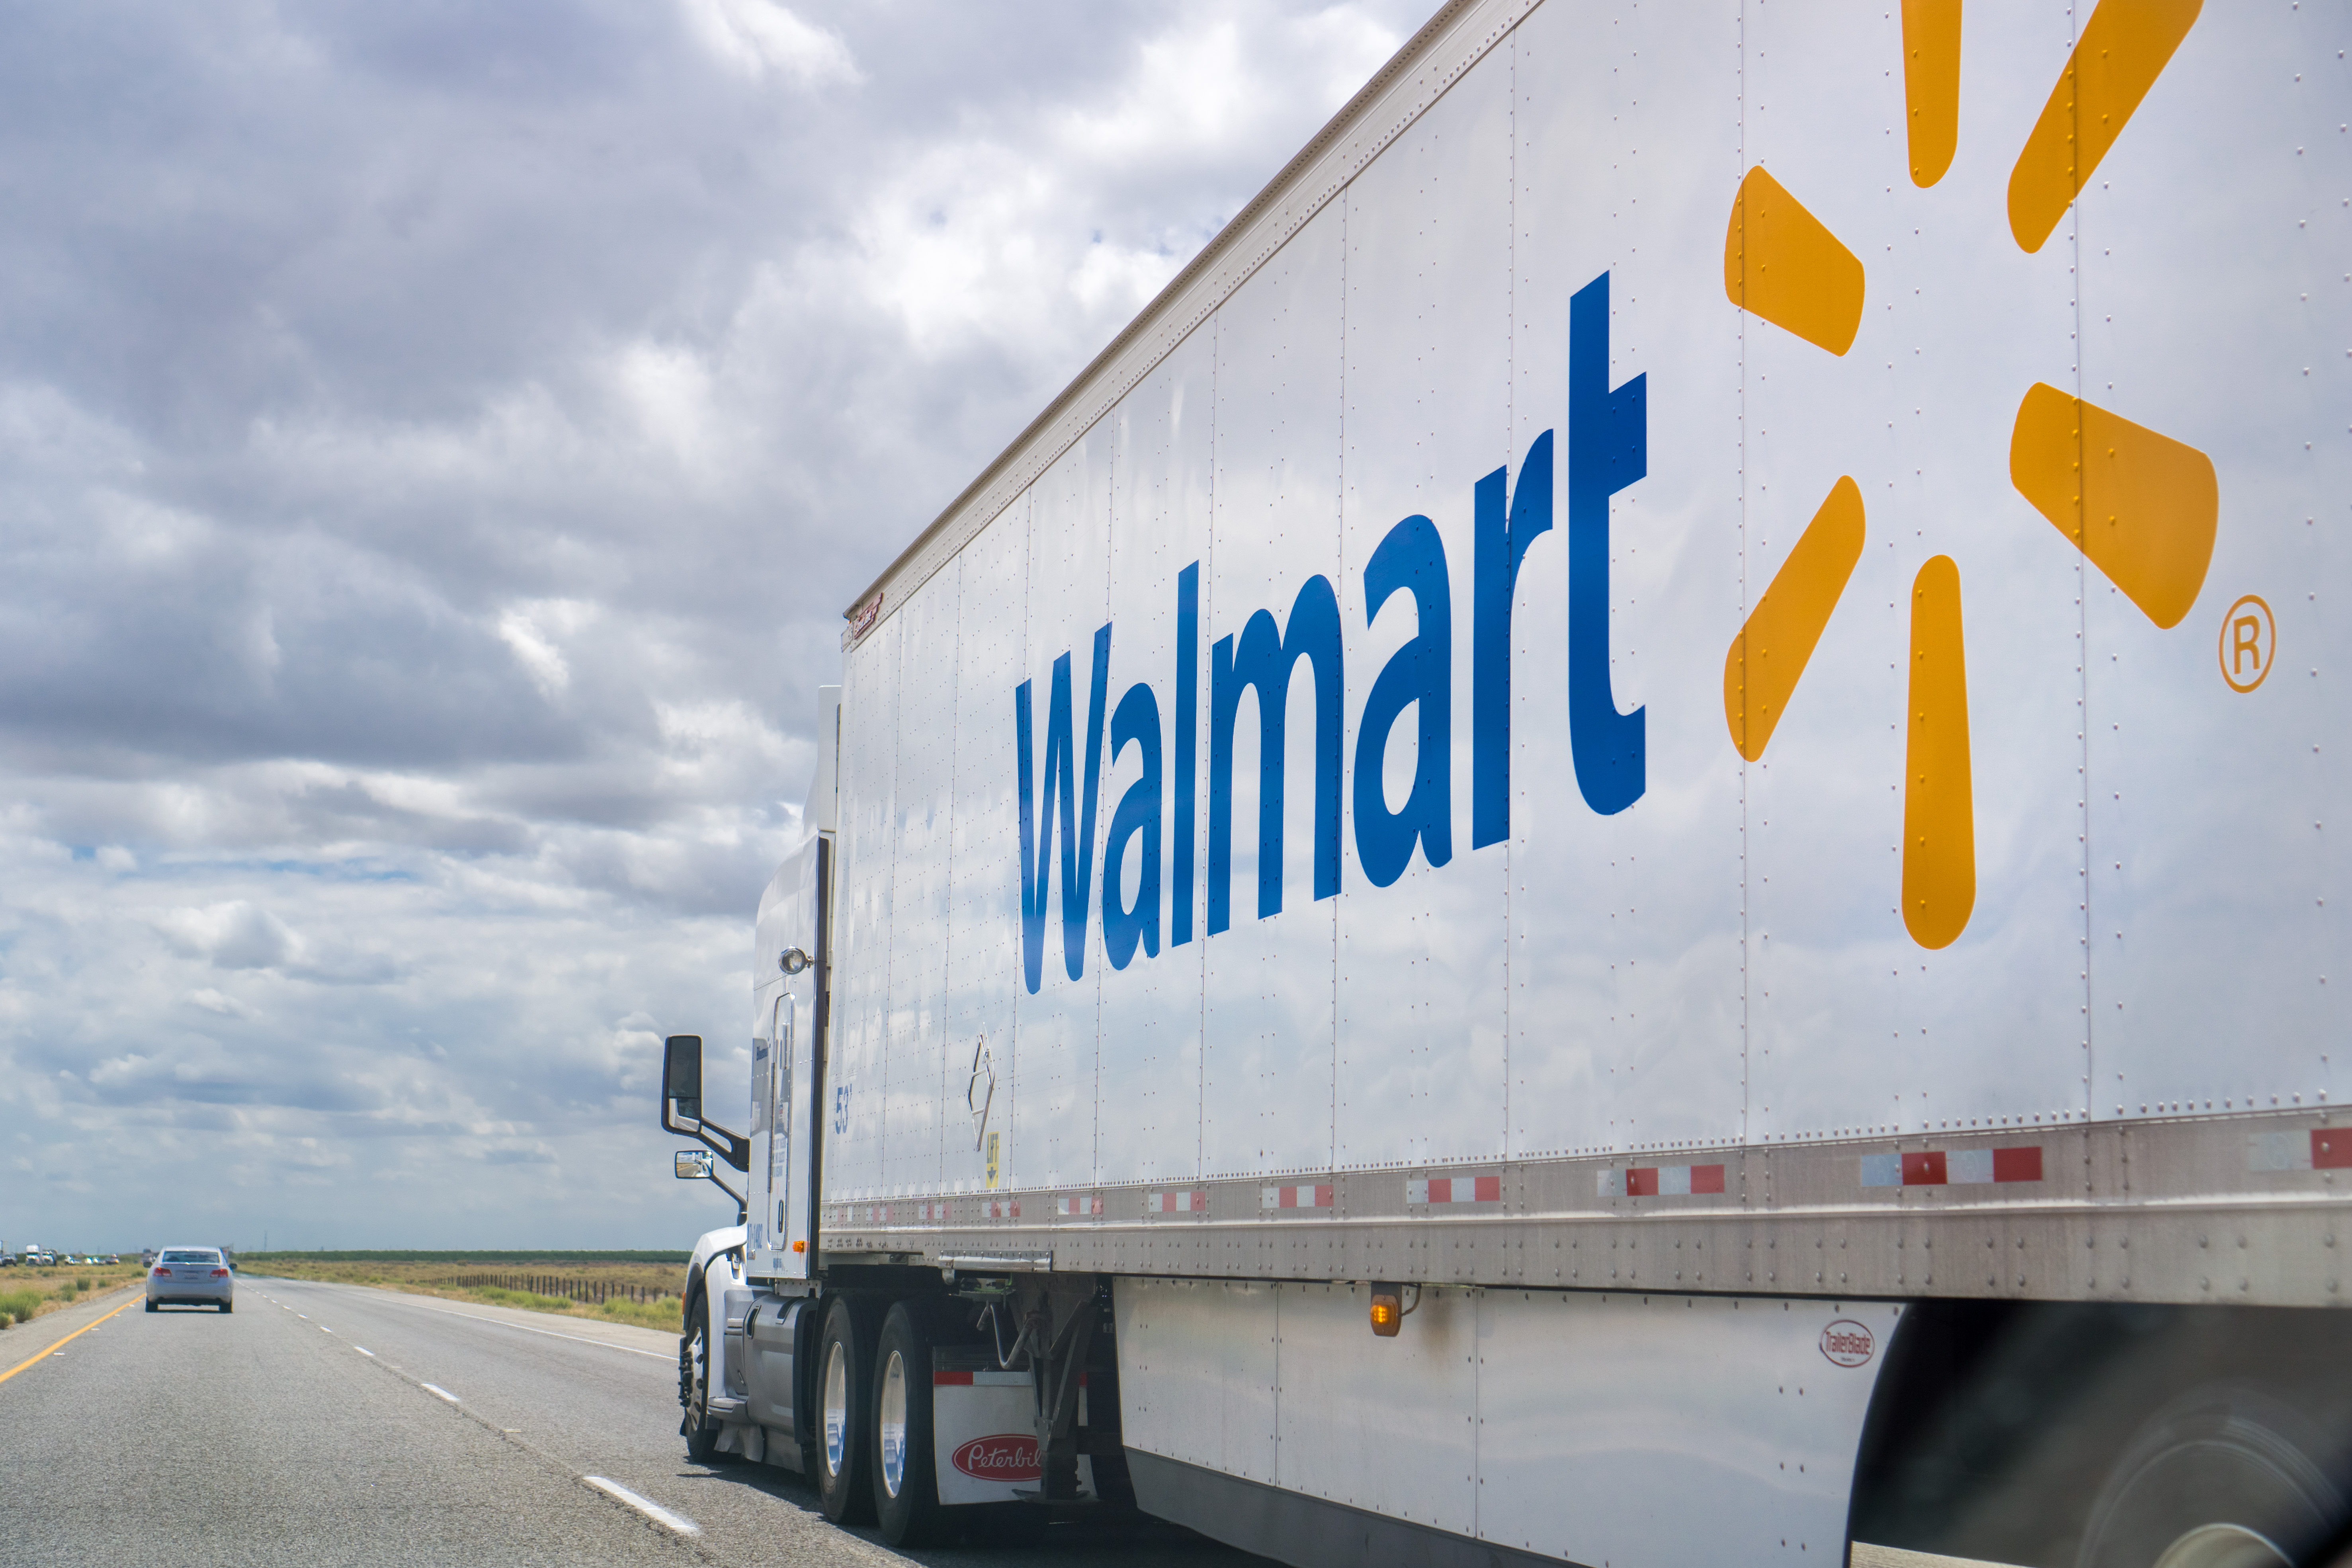 May 25, 2018 Bakersfield / CA / USA - Walmart truck driving on the interstate on a cloudy day